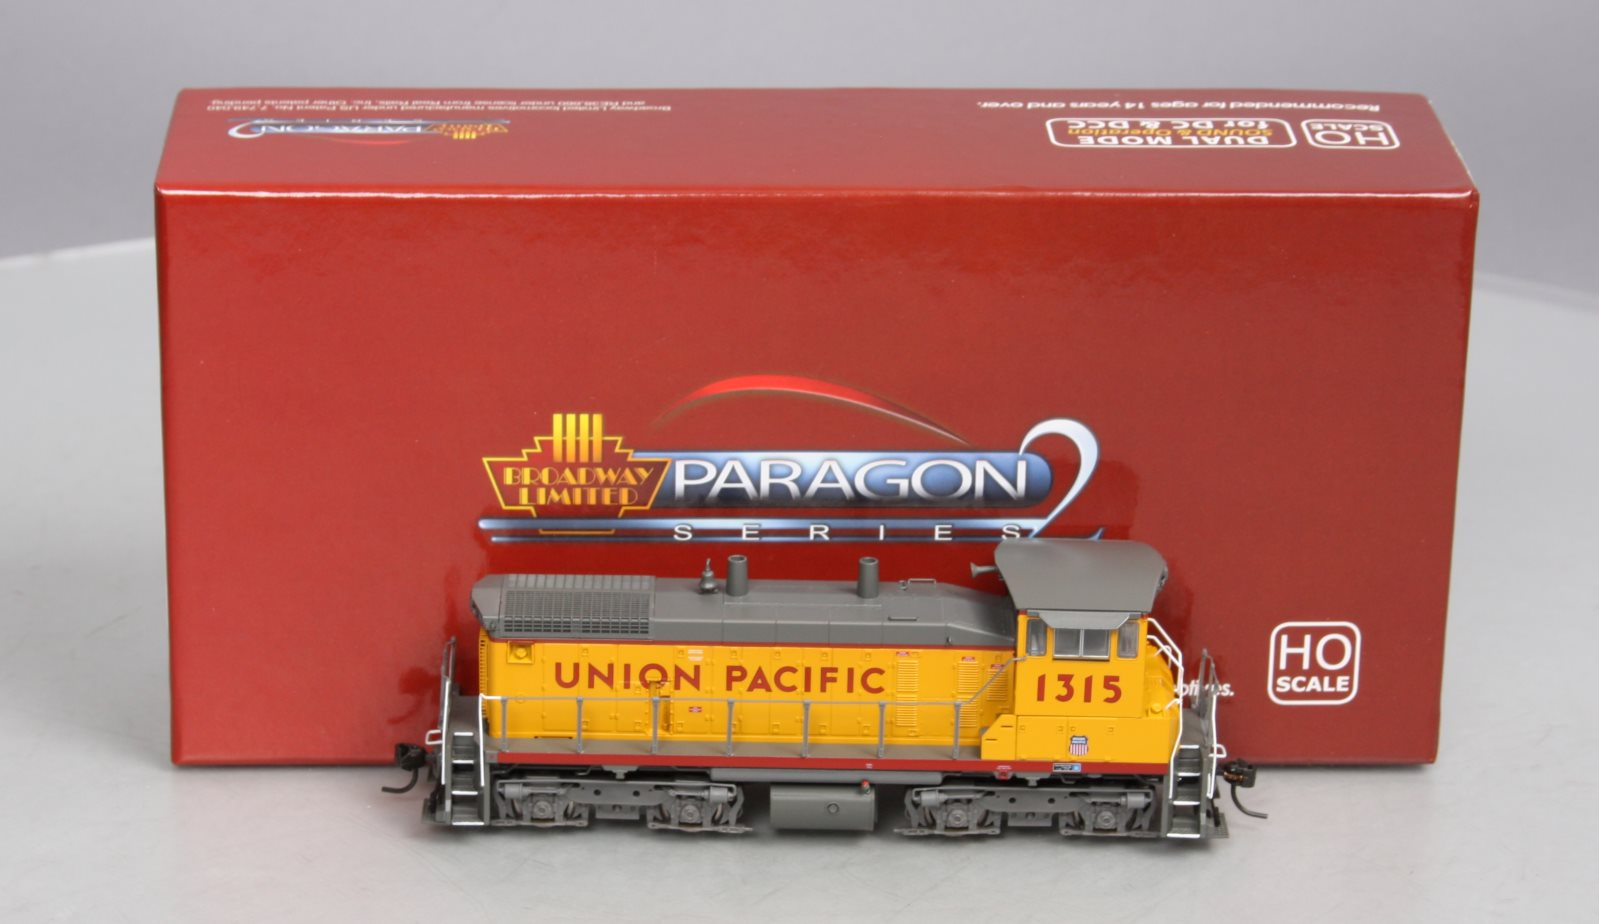 https://www trainz com/products/mth-20-201061-o-hi-rail-u28b